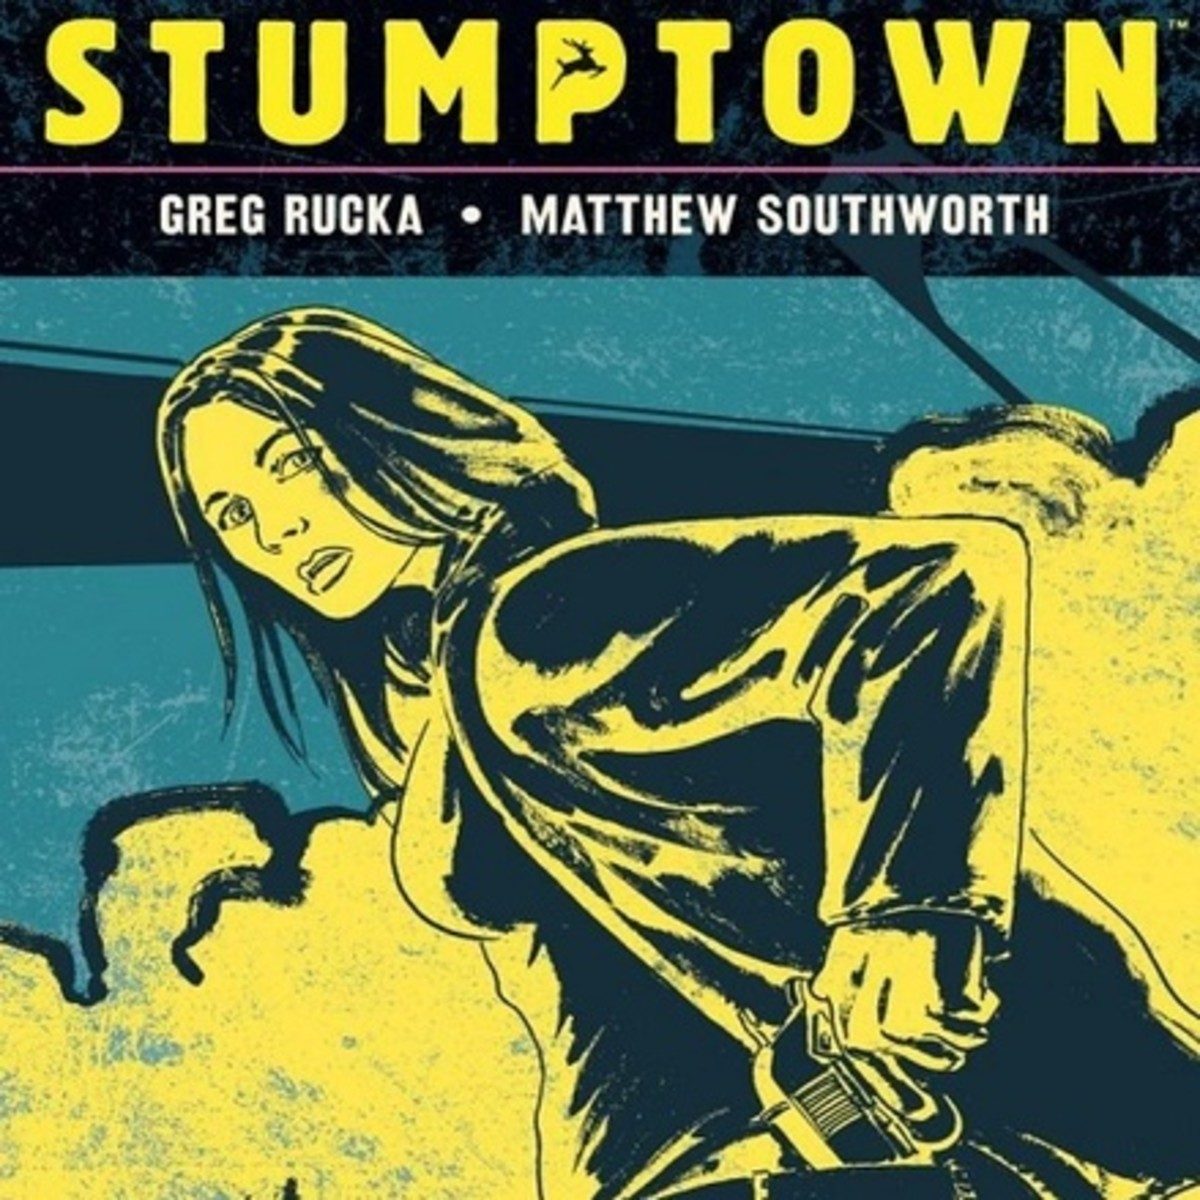 Partial image from the cover of Stumptown, vol. 1, art by Southworth.